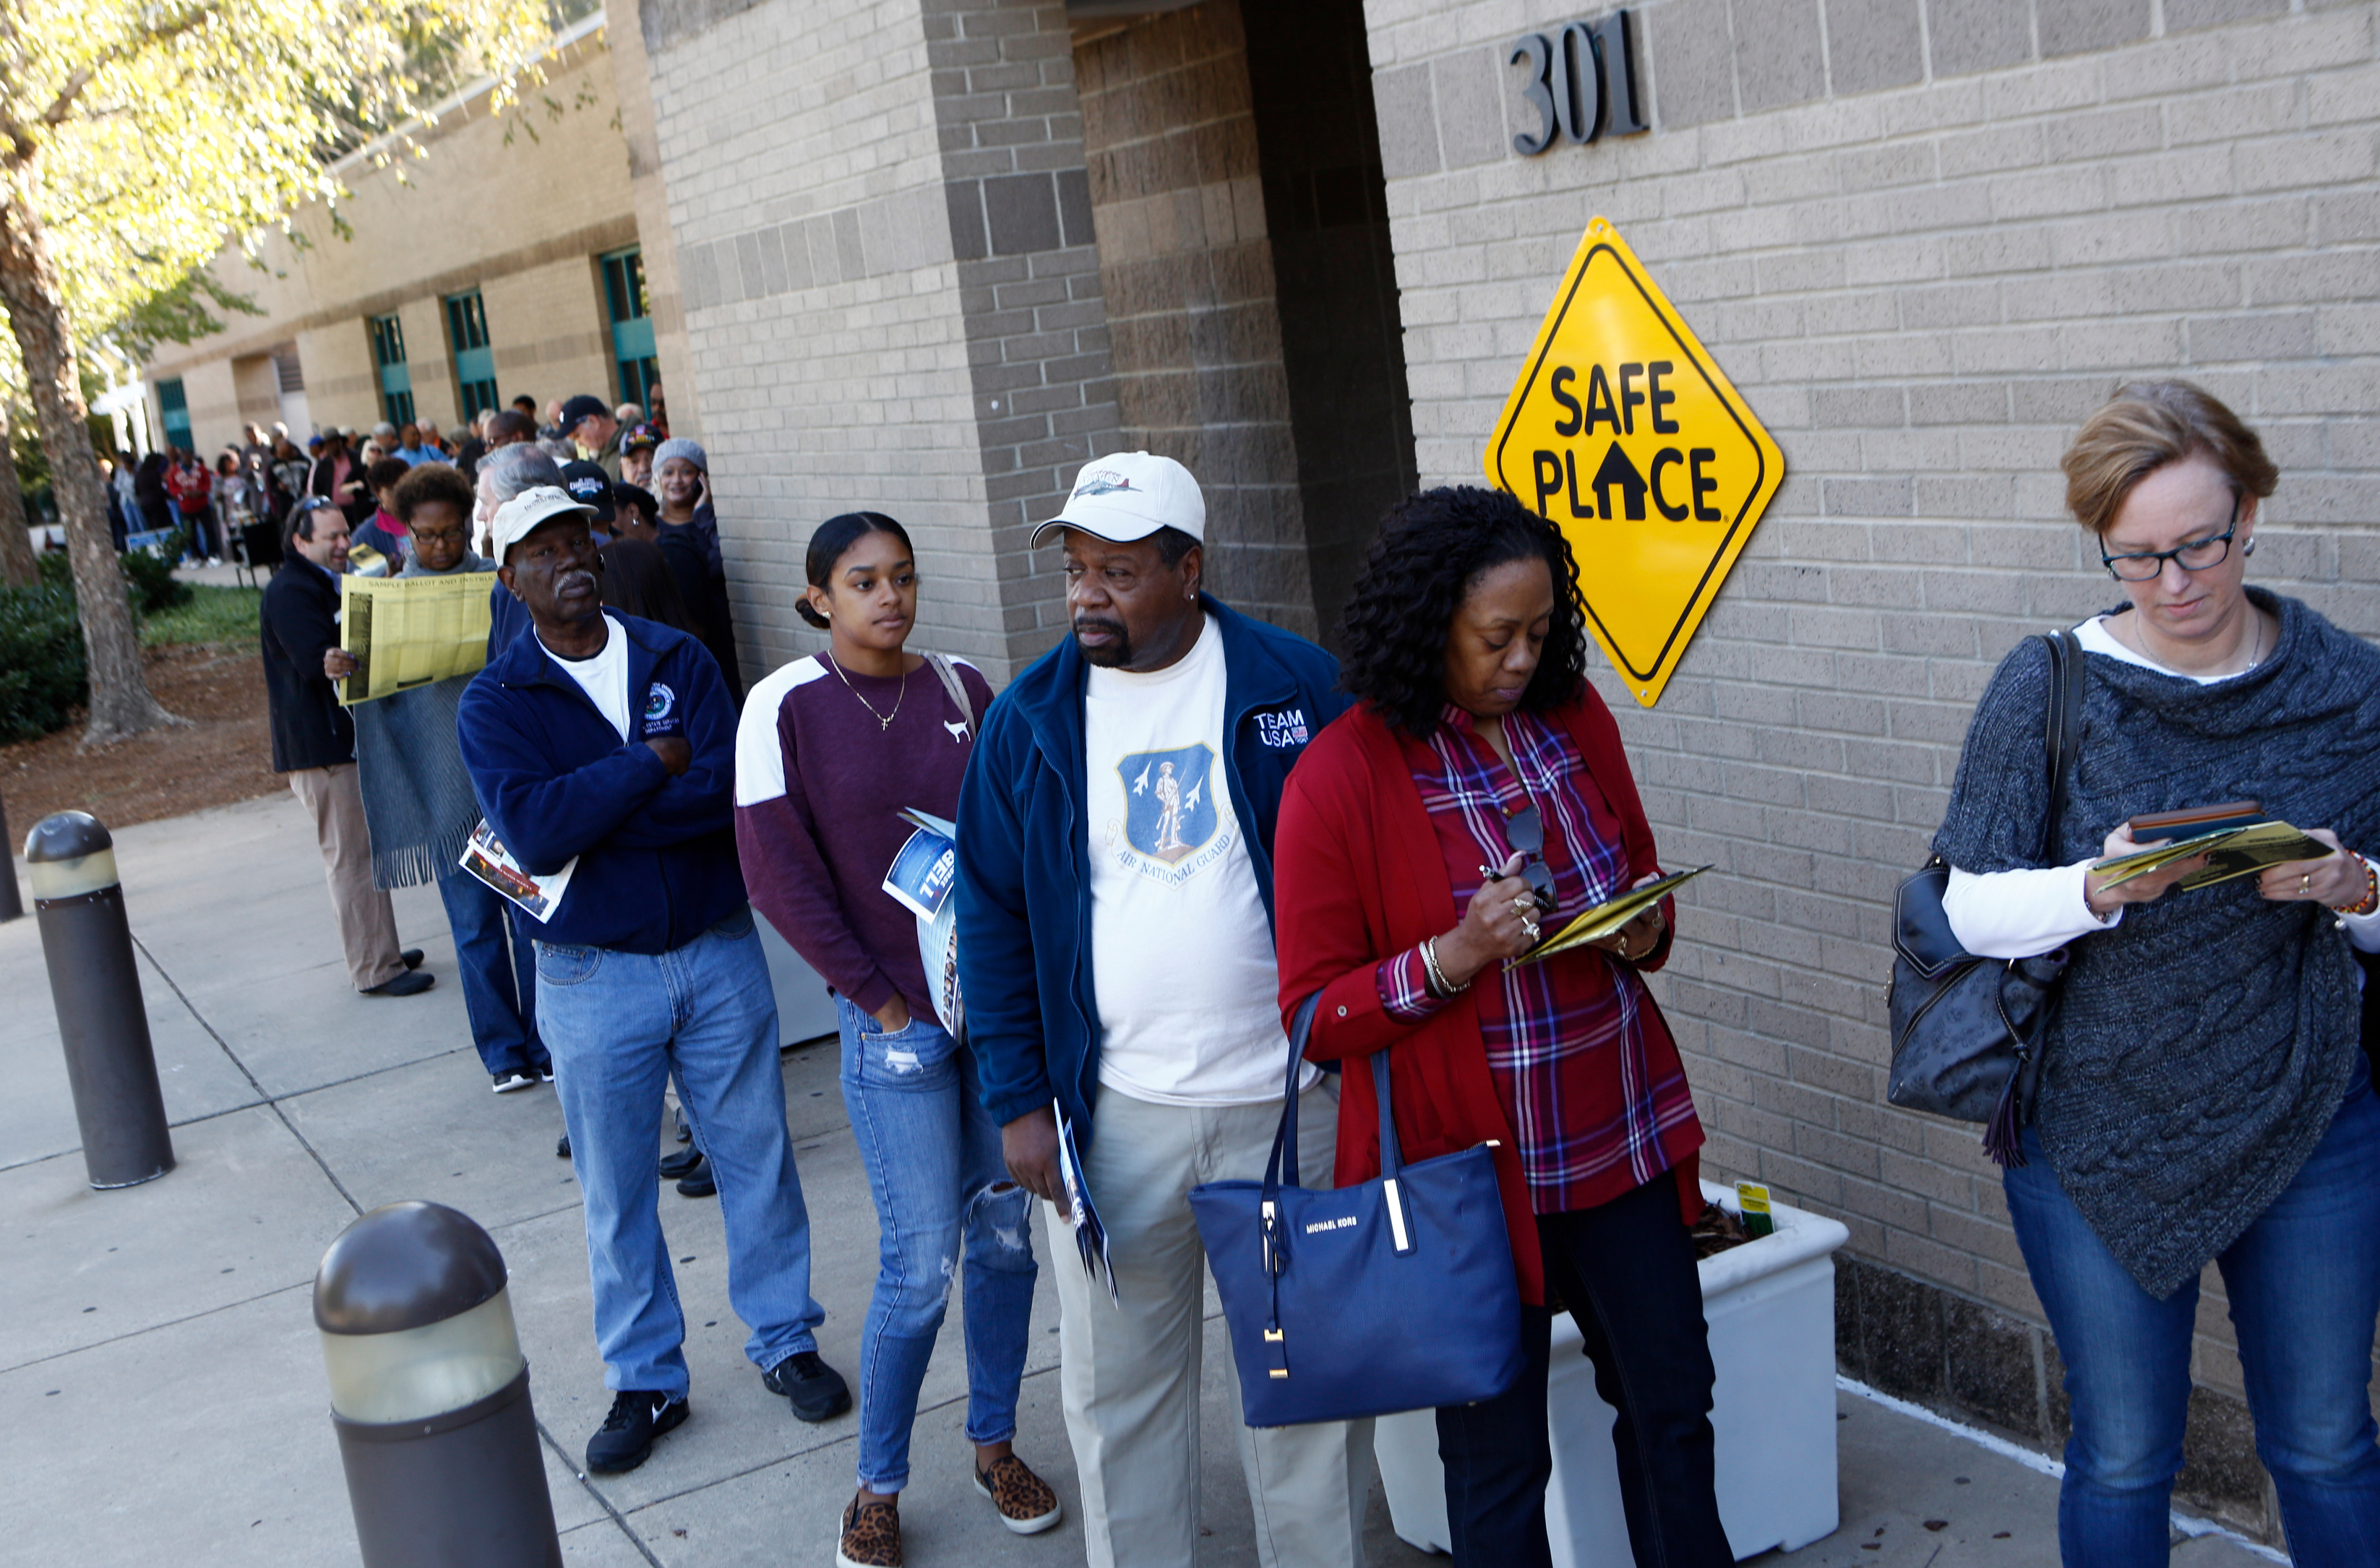 North Carolina residents wait in a line to get into the Charlotte Mecklenburg University City Library to early vote on October 24, 2016 in Charlotte, North Carolina. Brian Blanco/Getty Images